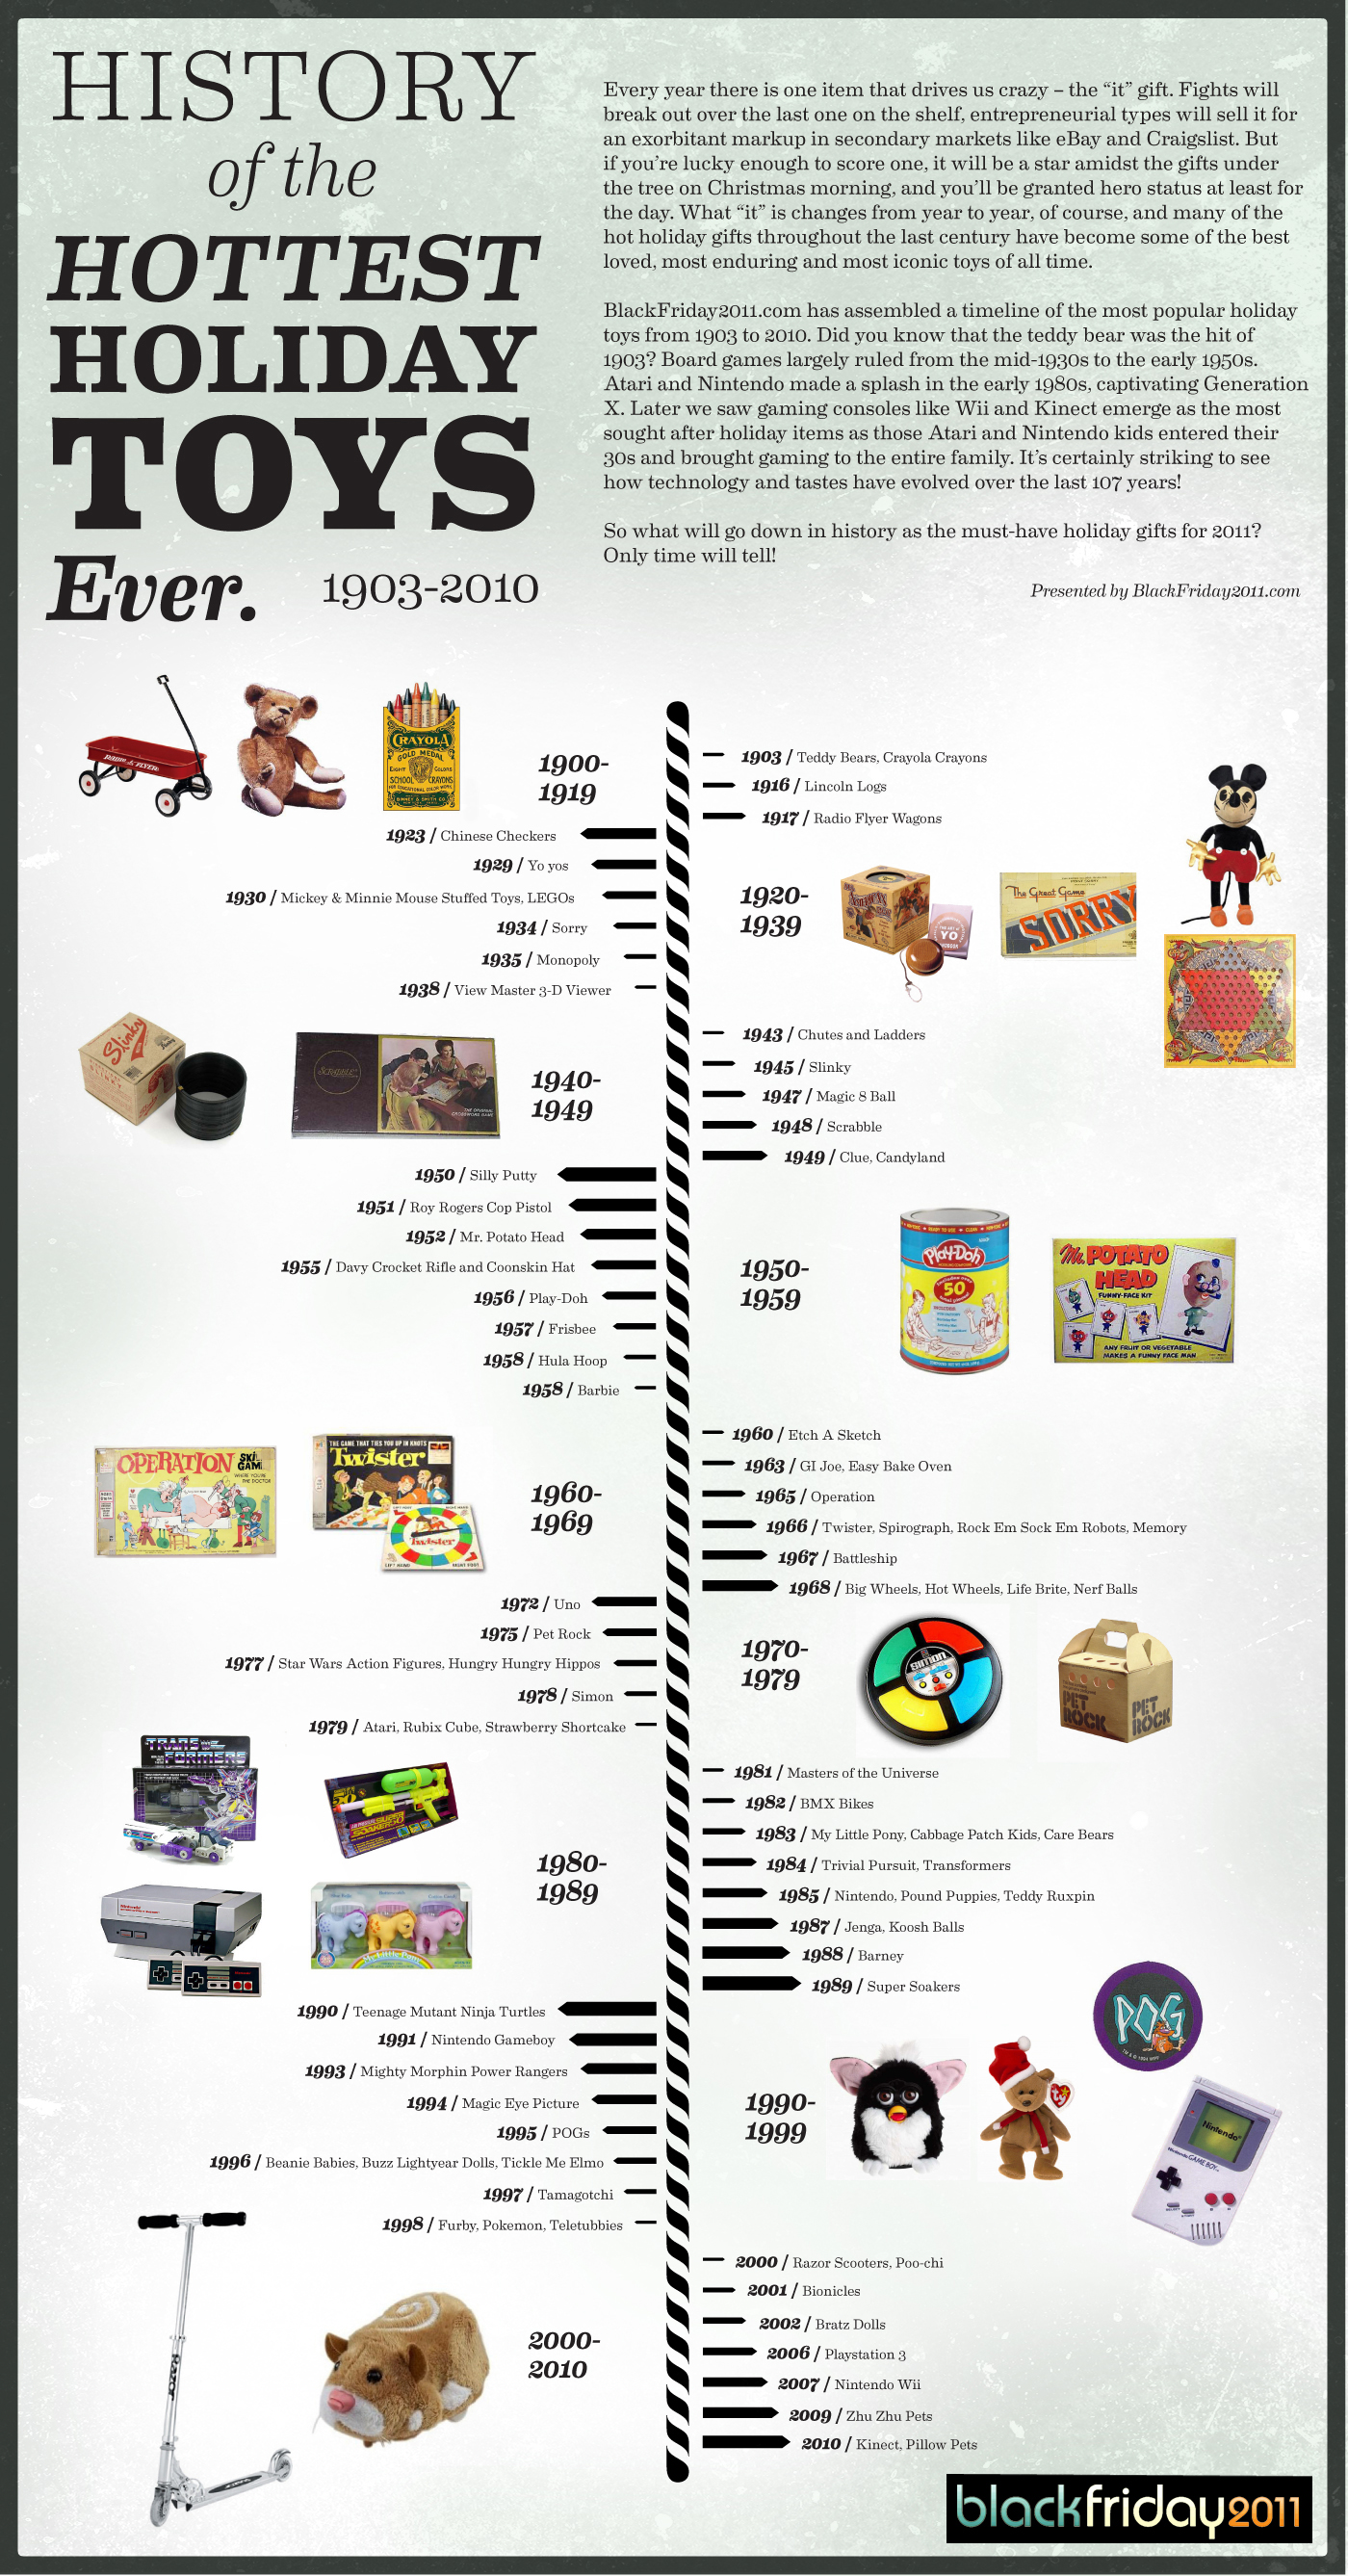 Hottest Holiday Toys Infographic Timeline